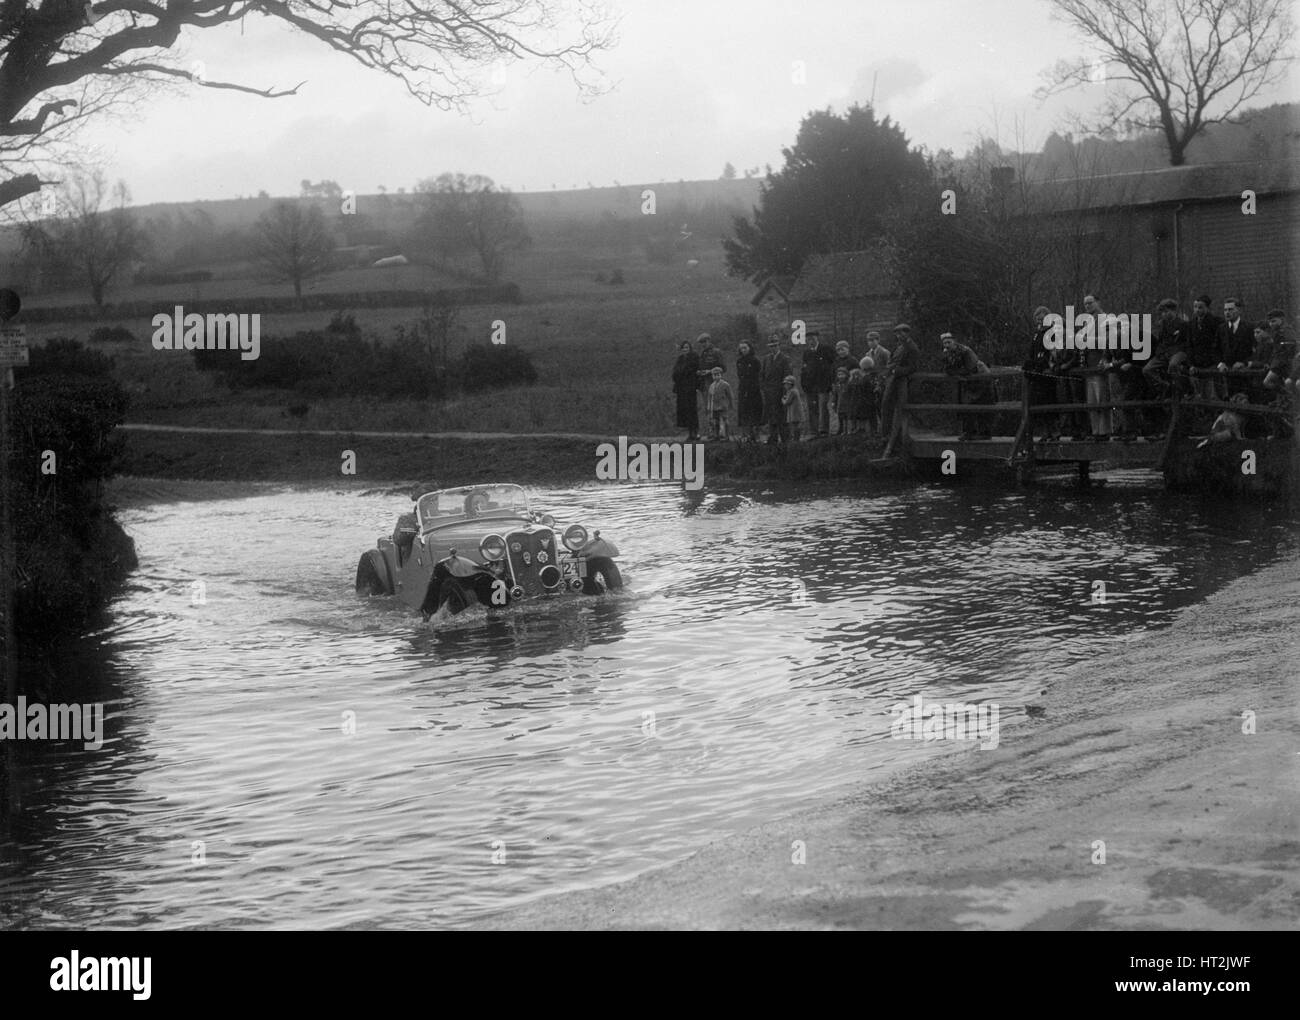 972 cc Singer Le Mans driving through a ford during a motoring trial, 1936. Artist: Bill Brunell. - Stock Image